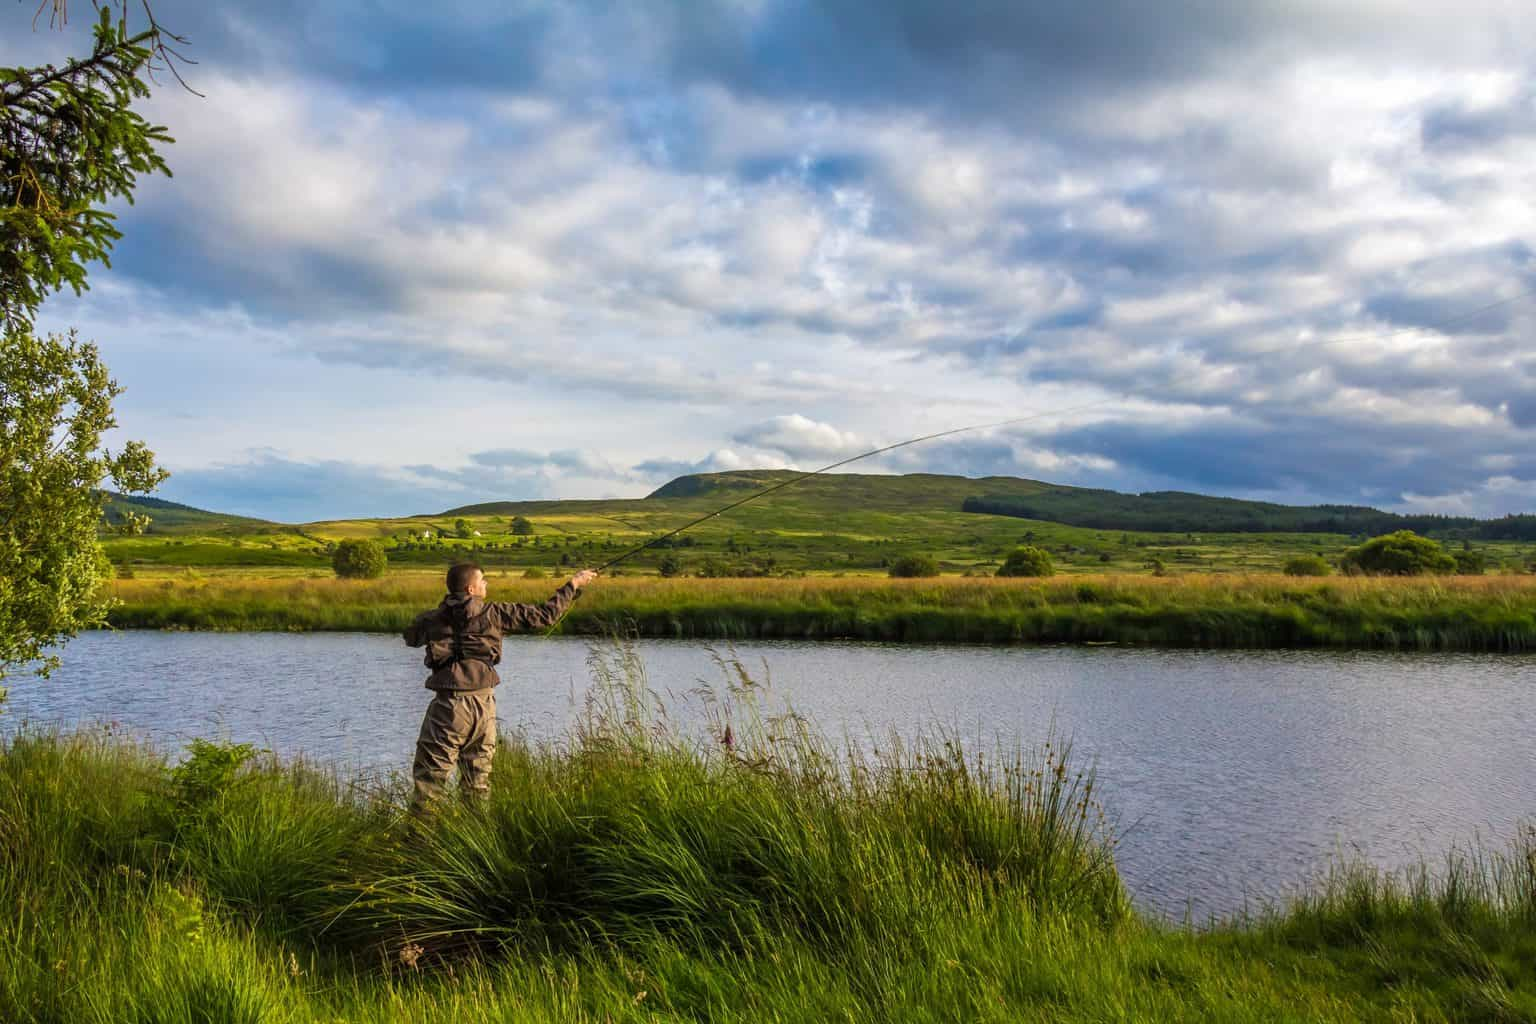 A fisherman fly fishing for crappie in the evening sun on the Blackwater of Dee, Galloway, Scotland